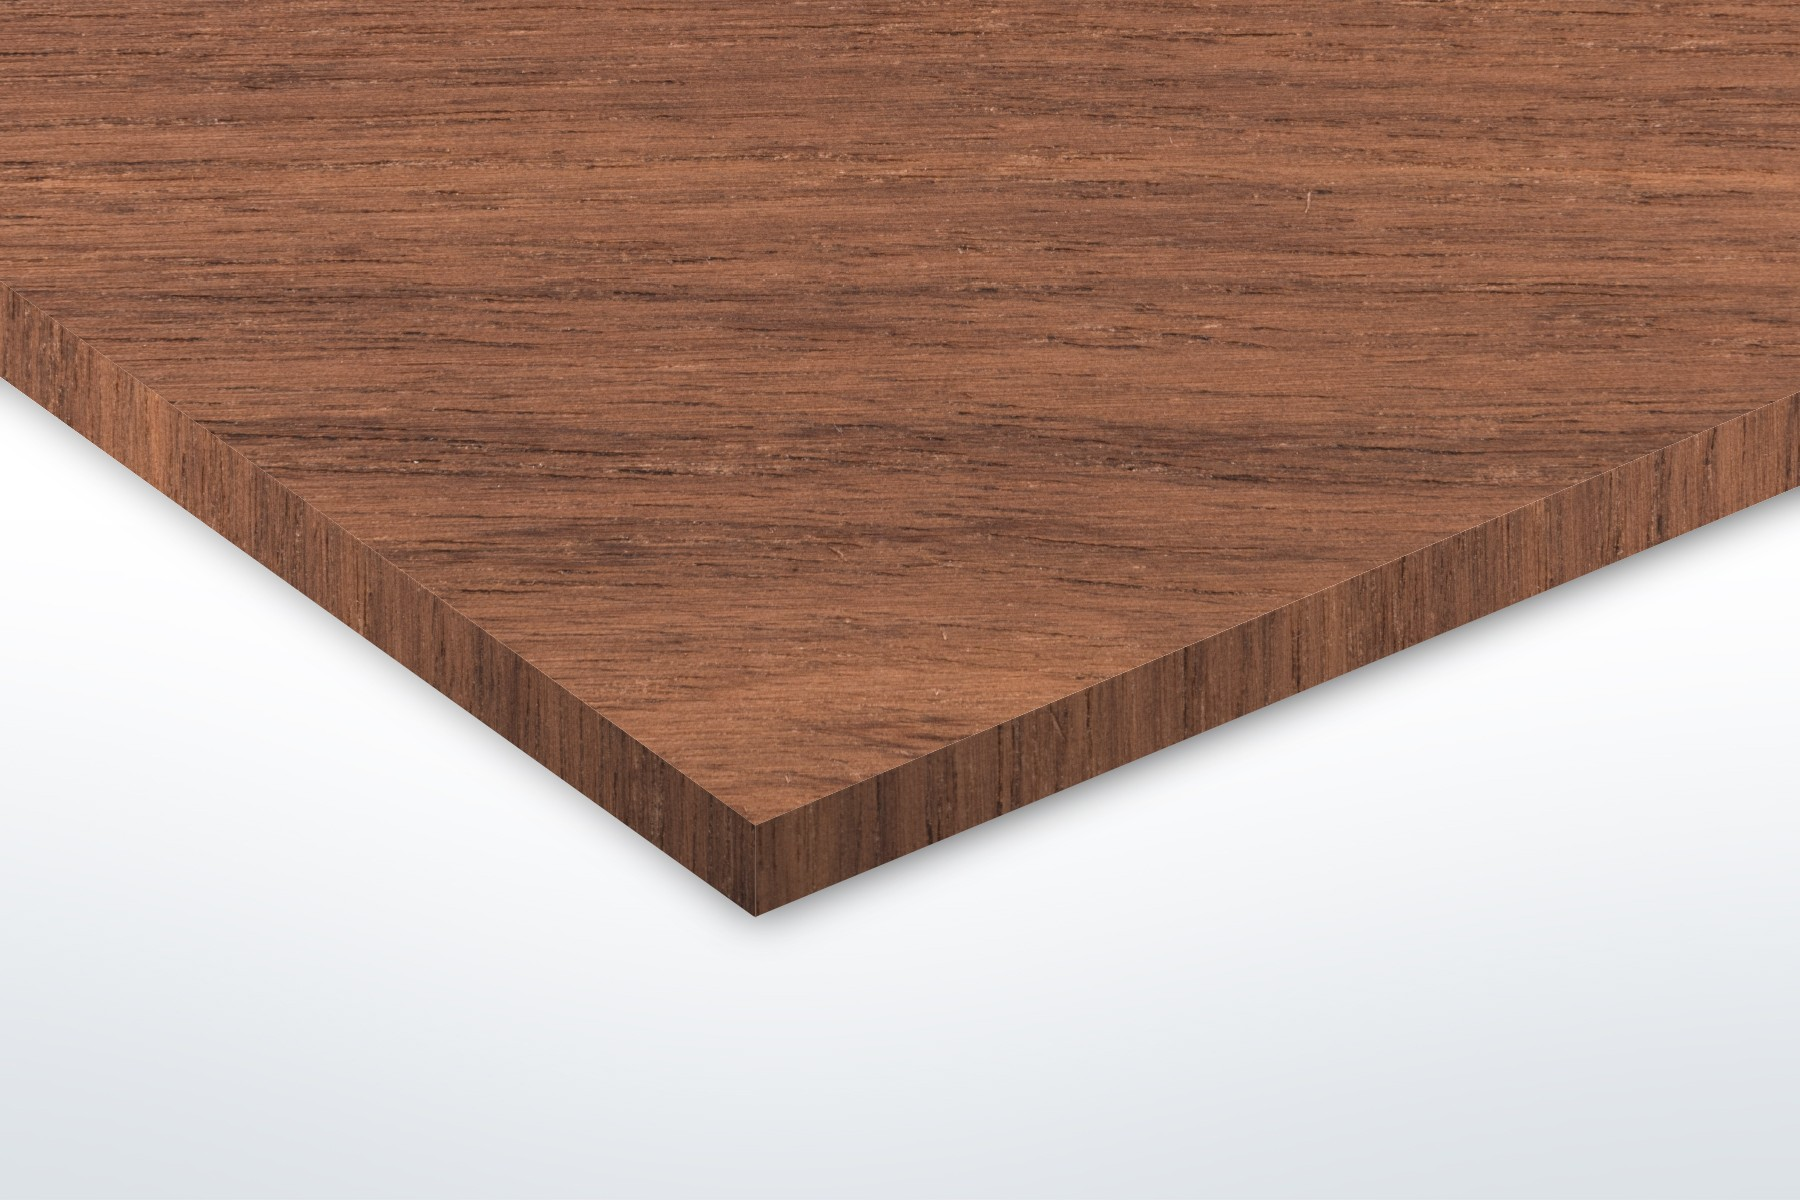 Walnut - 600 x 300mm - 5mm